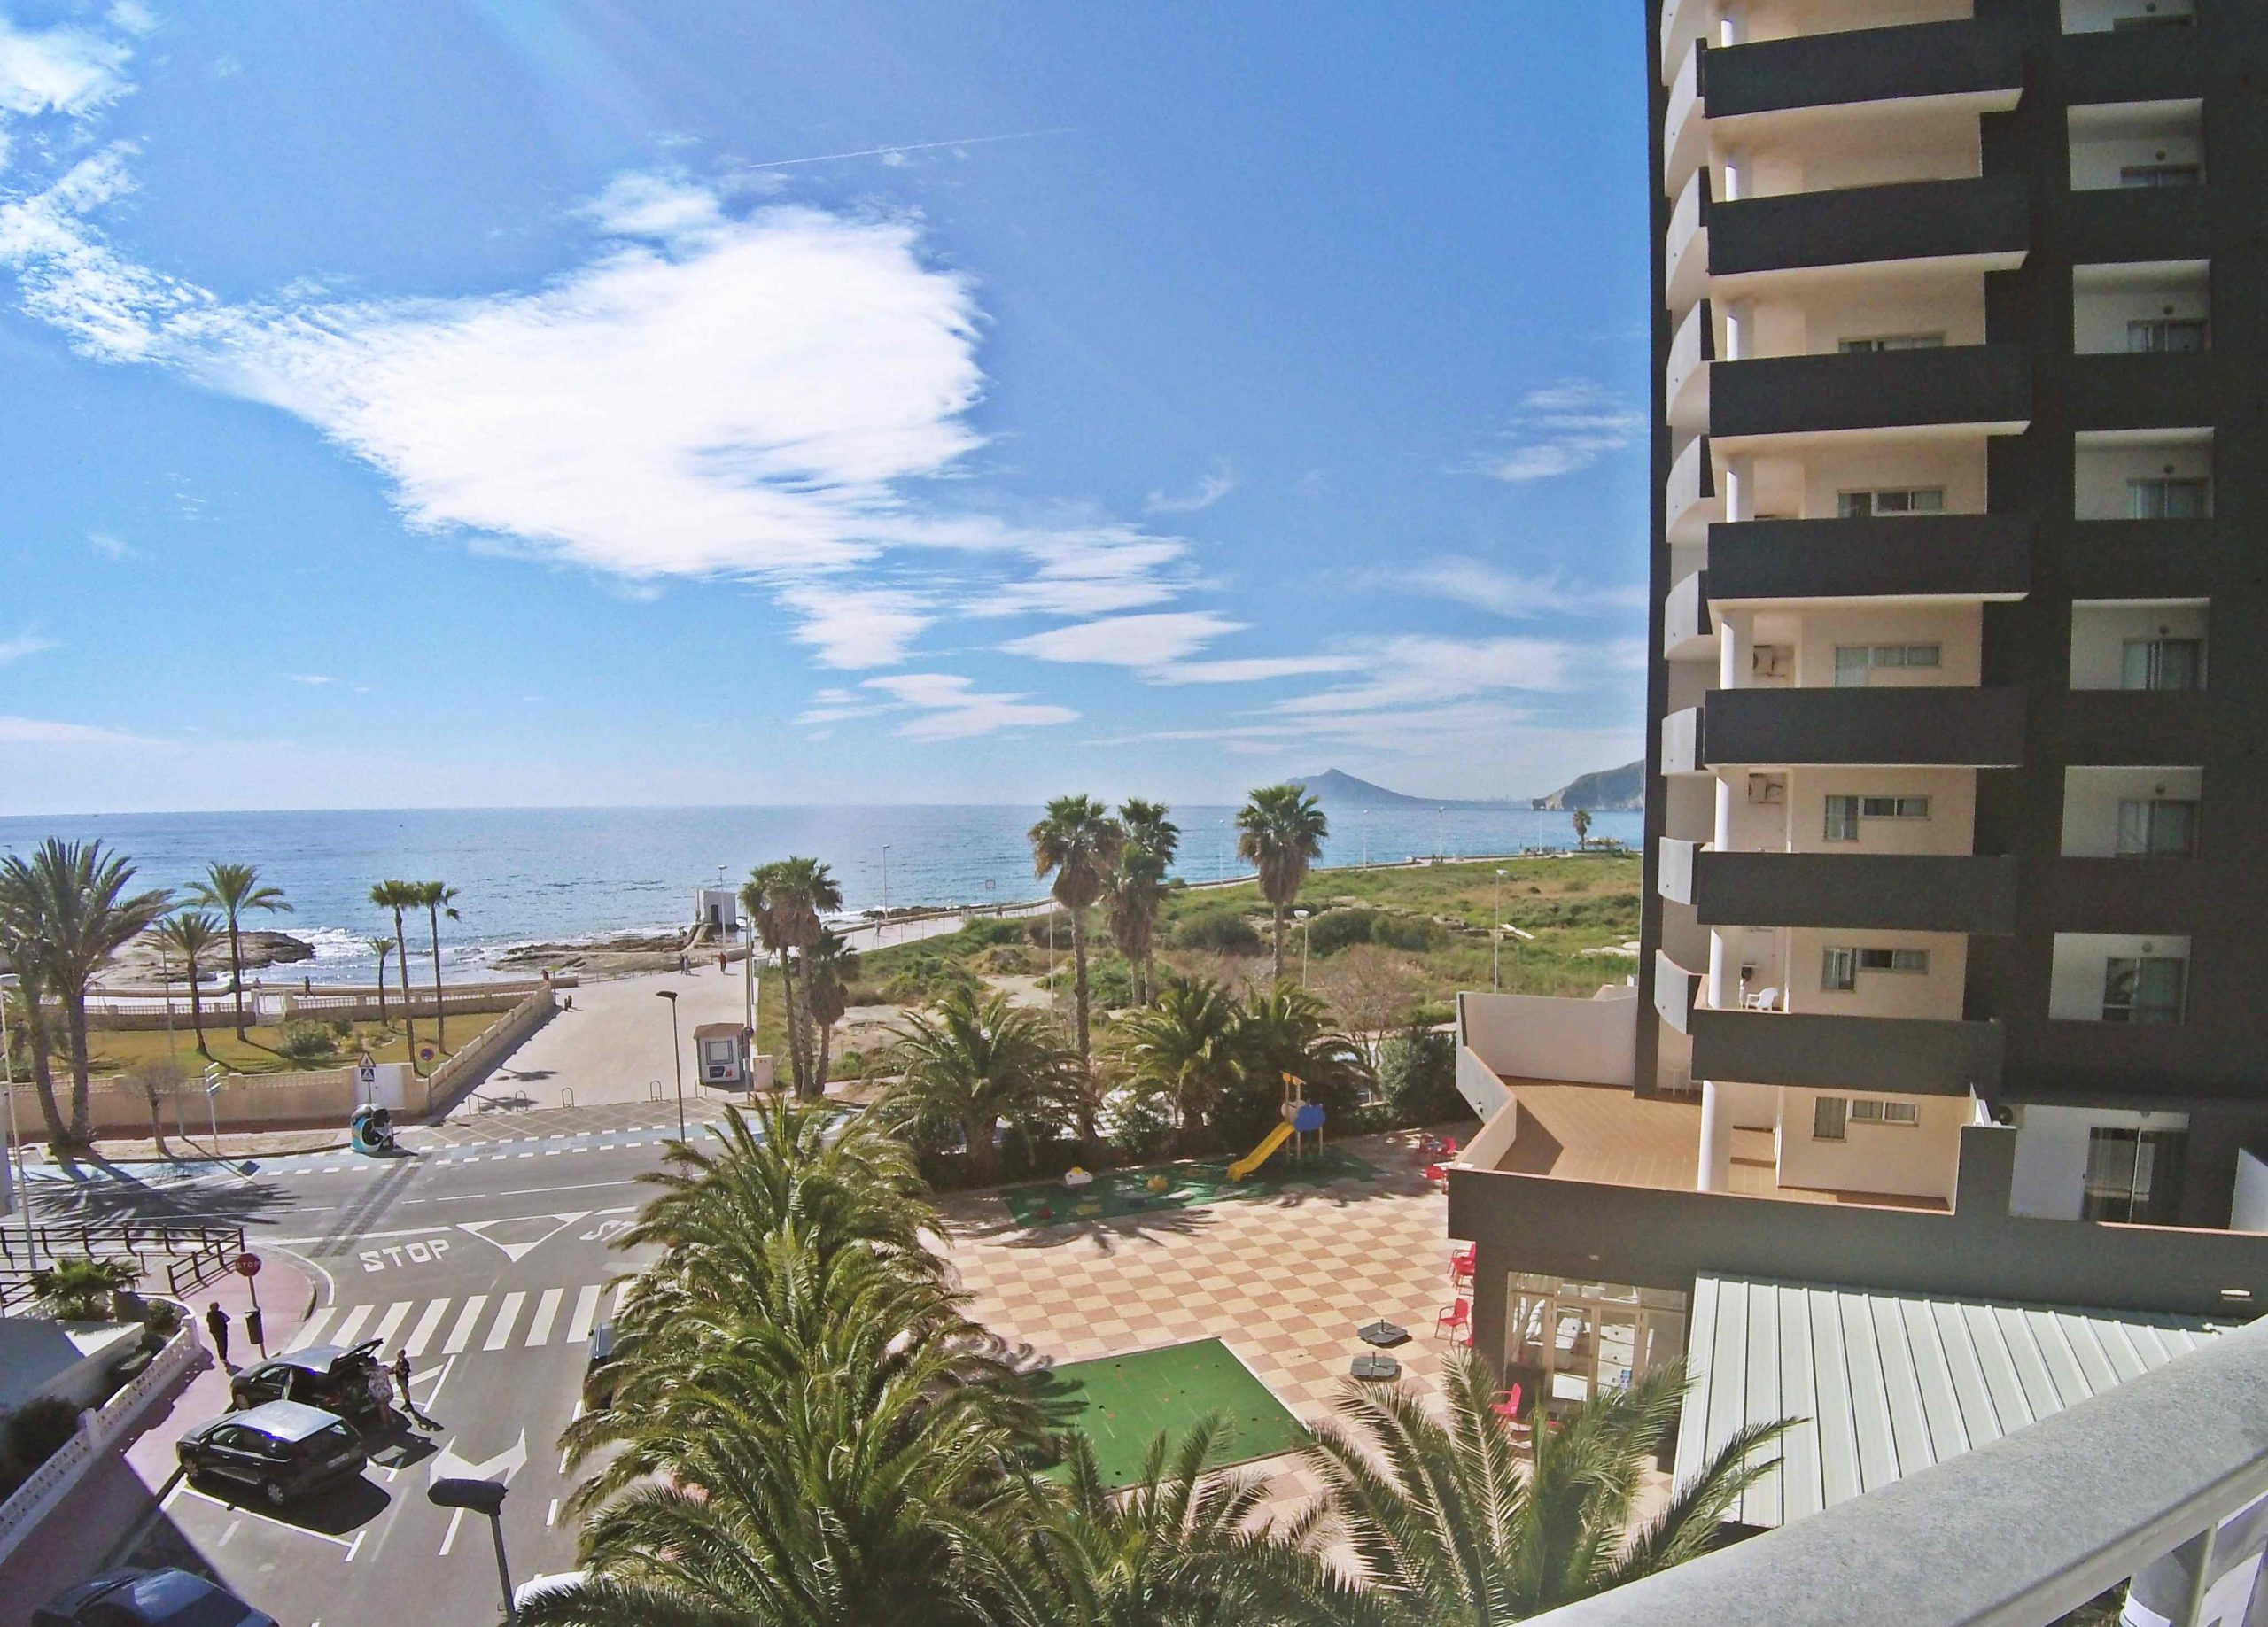 Three-bedroom apartment with sea and lake views, 50 meters from the beach! PD-20010